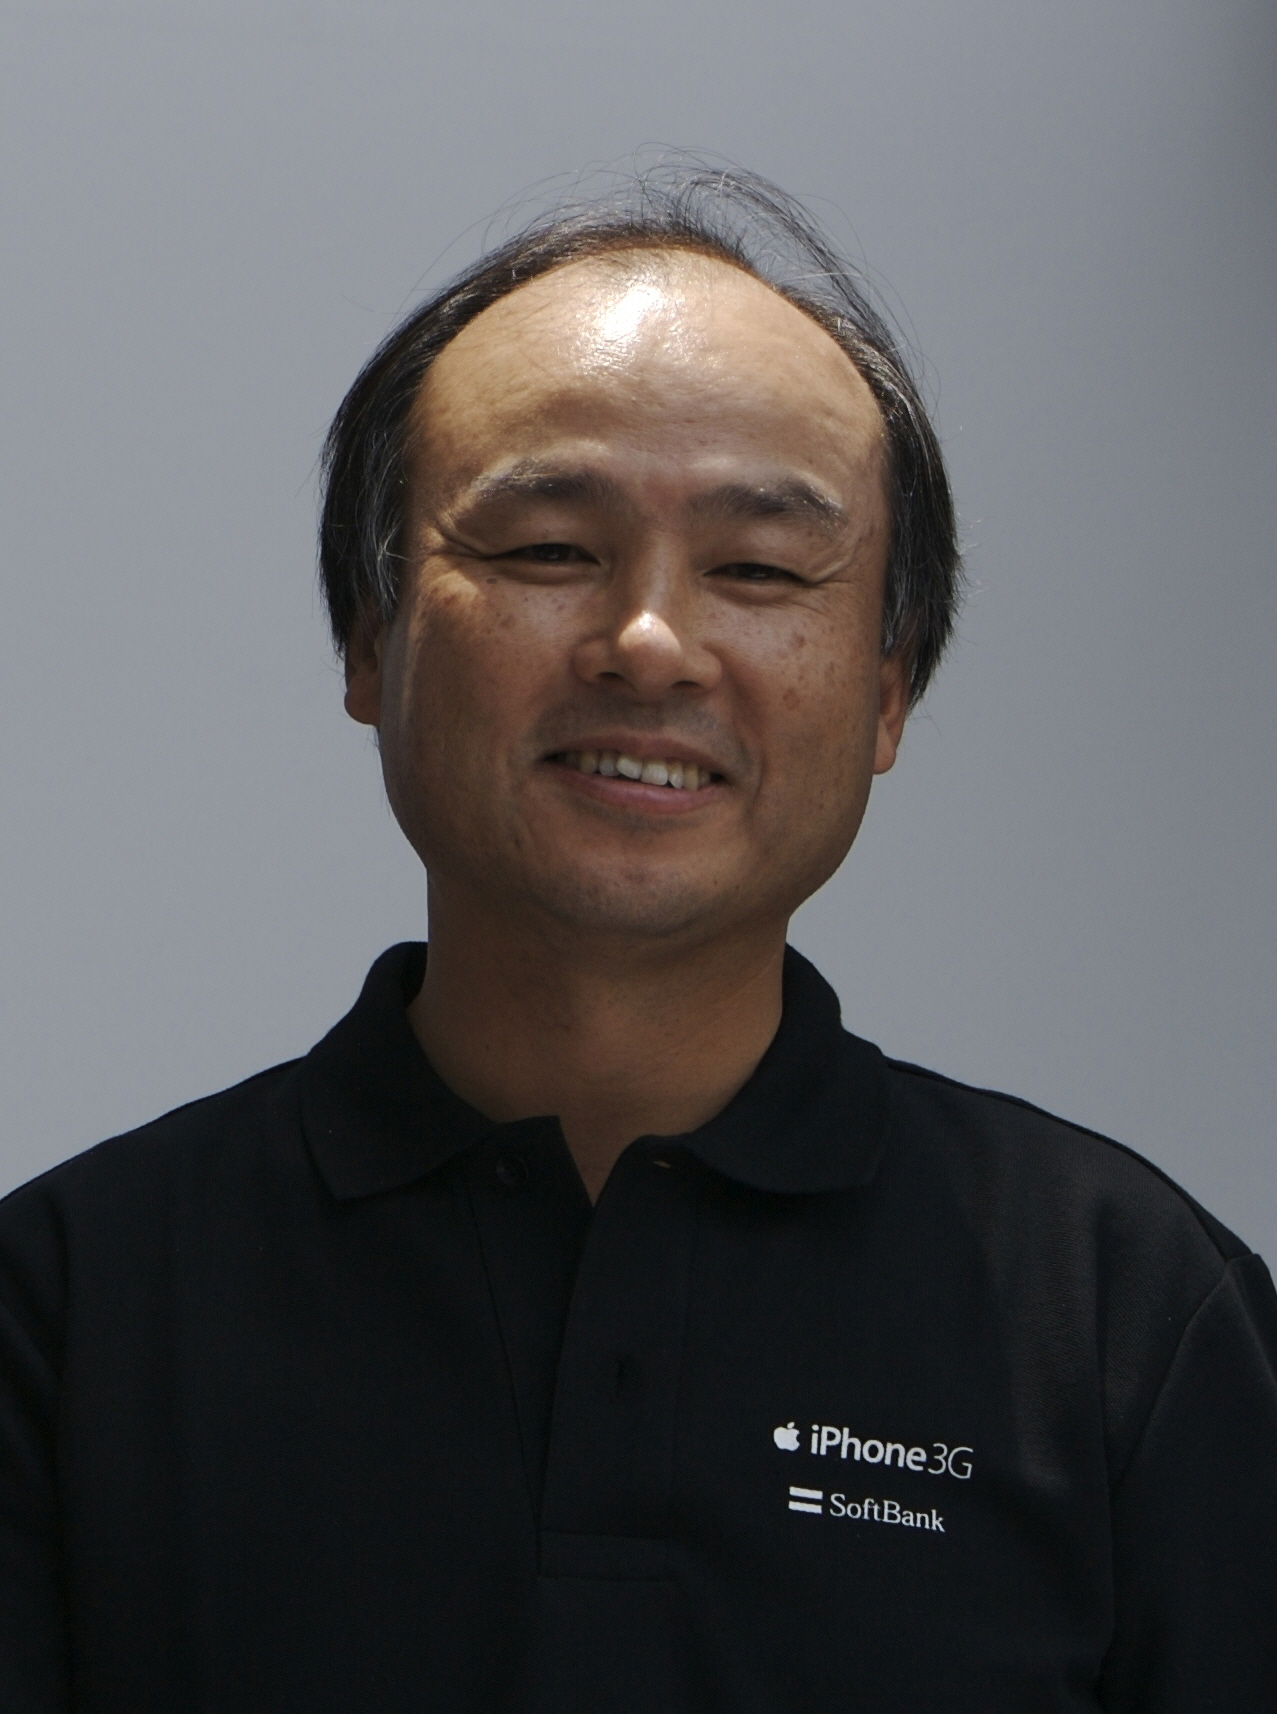 https://upload.wikimedia.org/wikipedia/commons/a/a8/Masayoshi_Son_%28%E5%AD%AB%E6%AD%A3%E7%BE%A9%29_on_July_11%2C_2008.jpg